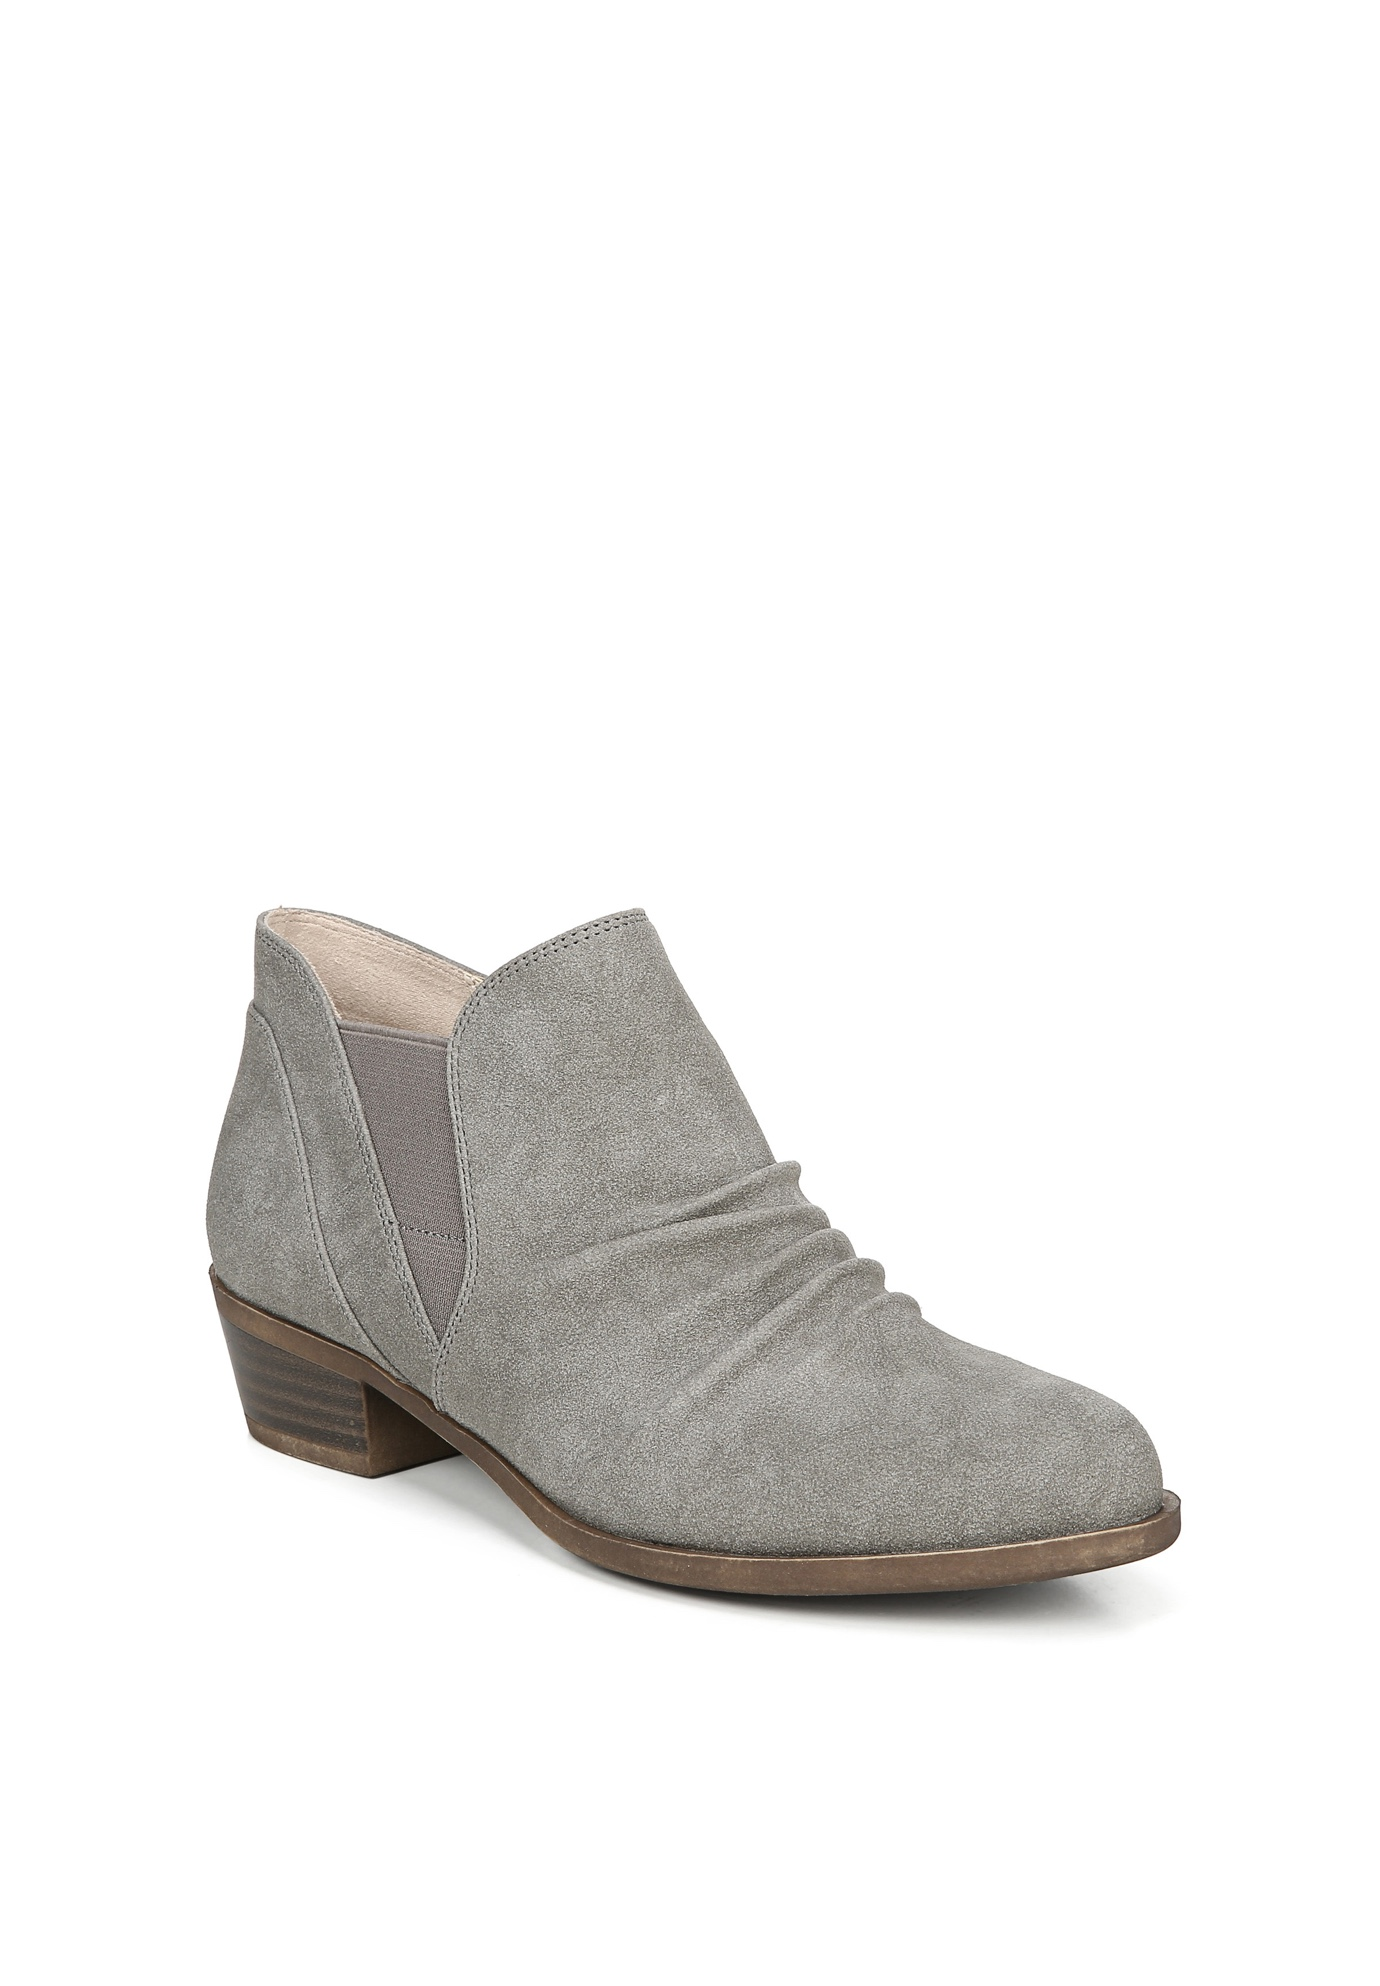 Aurora Bootie by LifeStride,